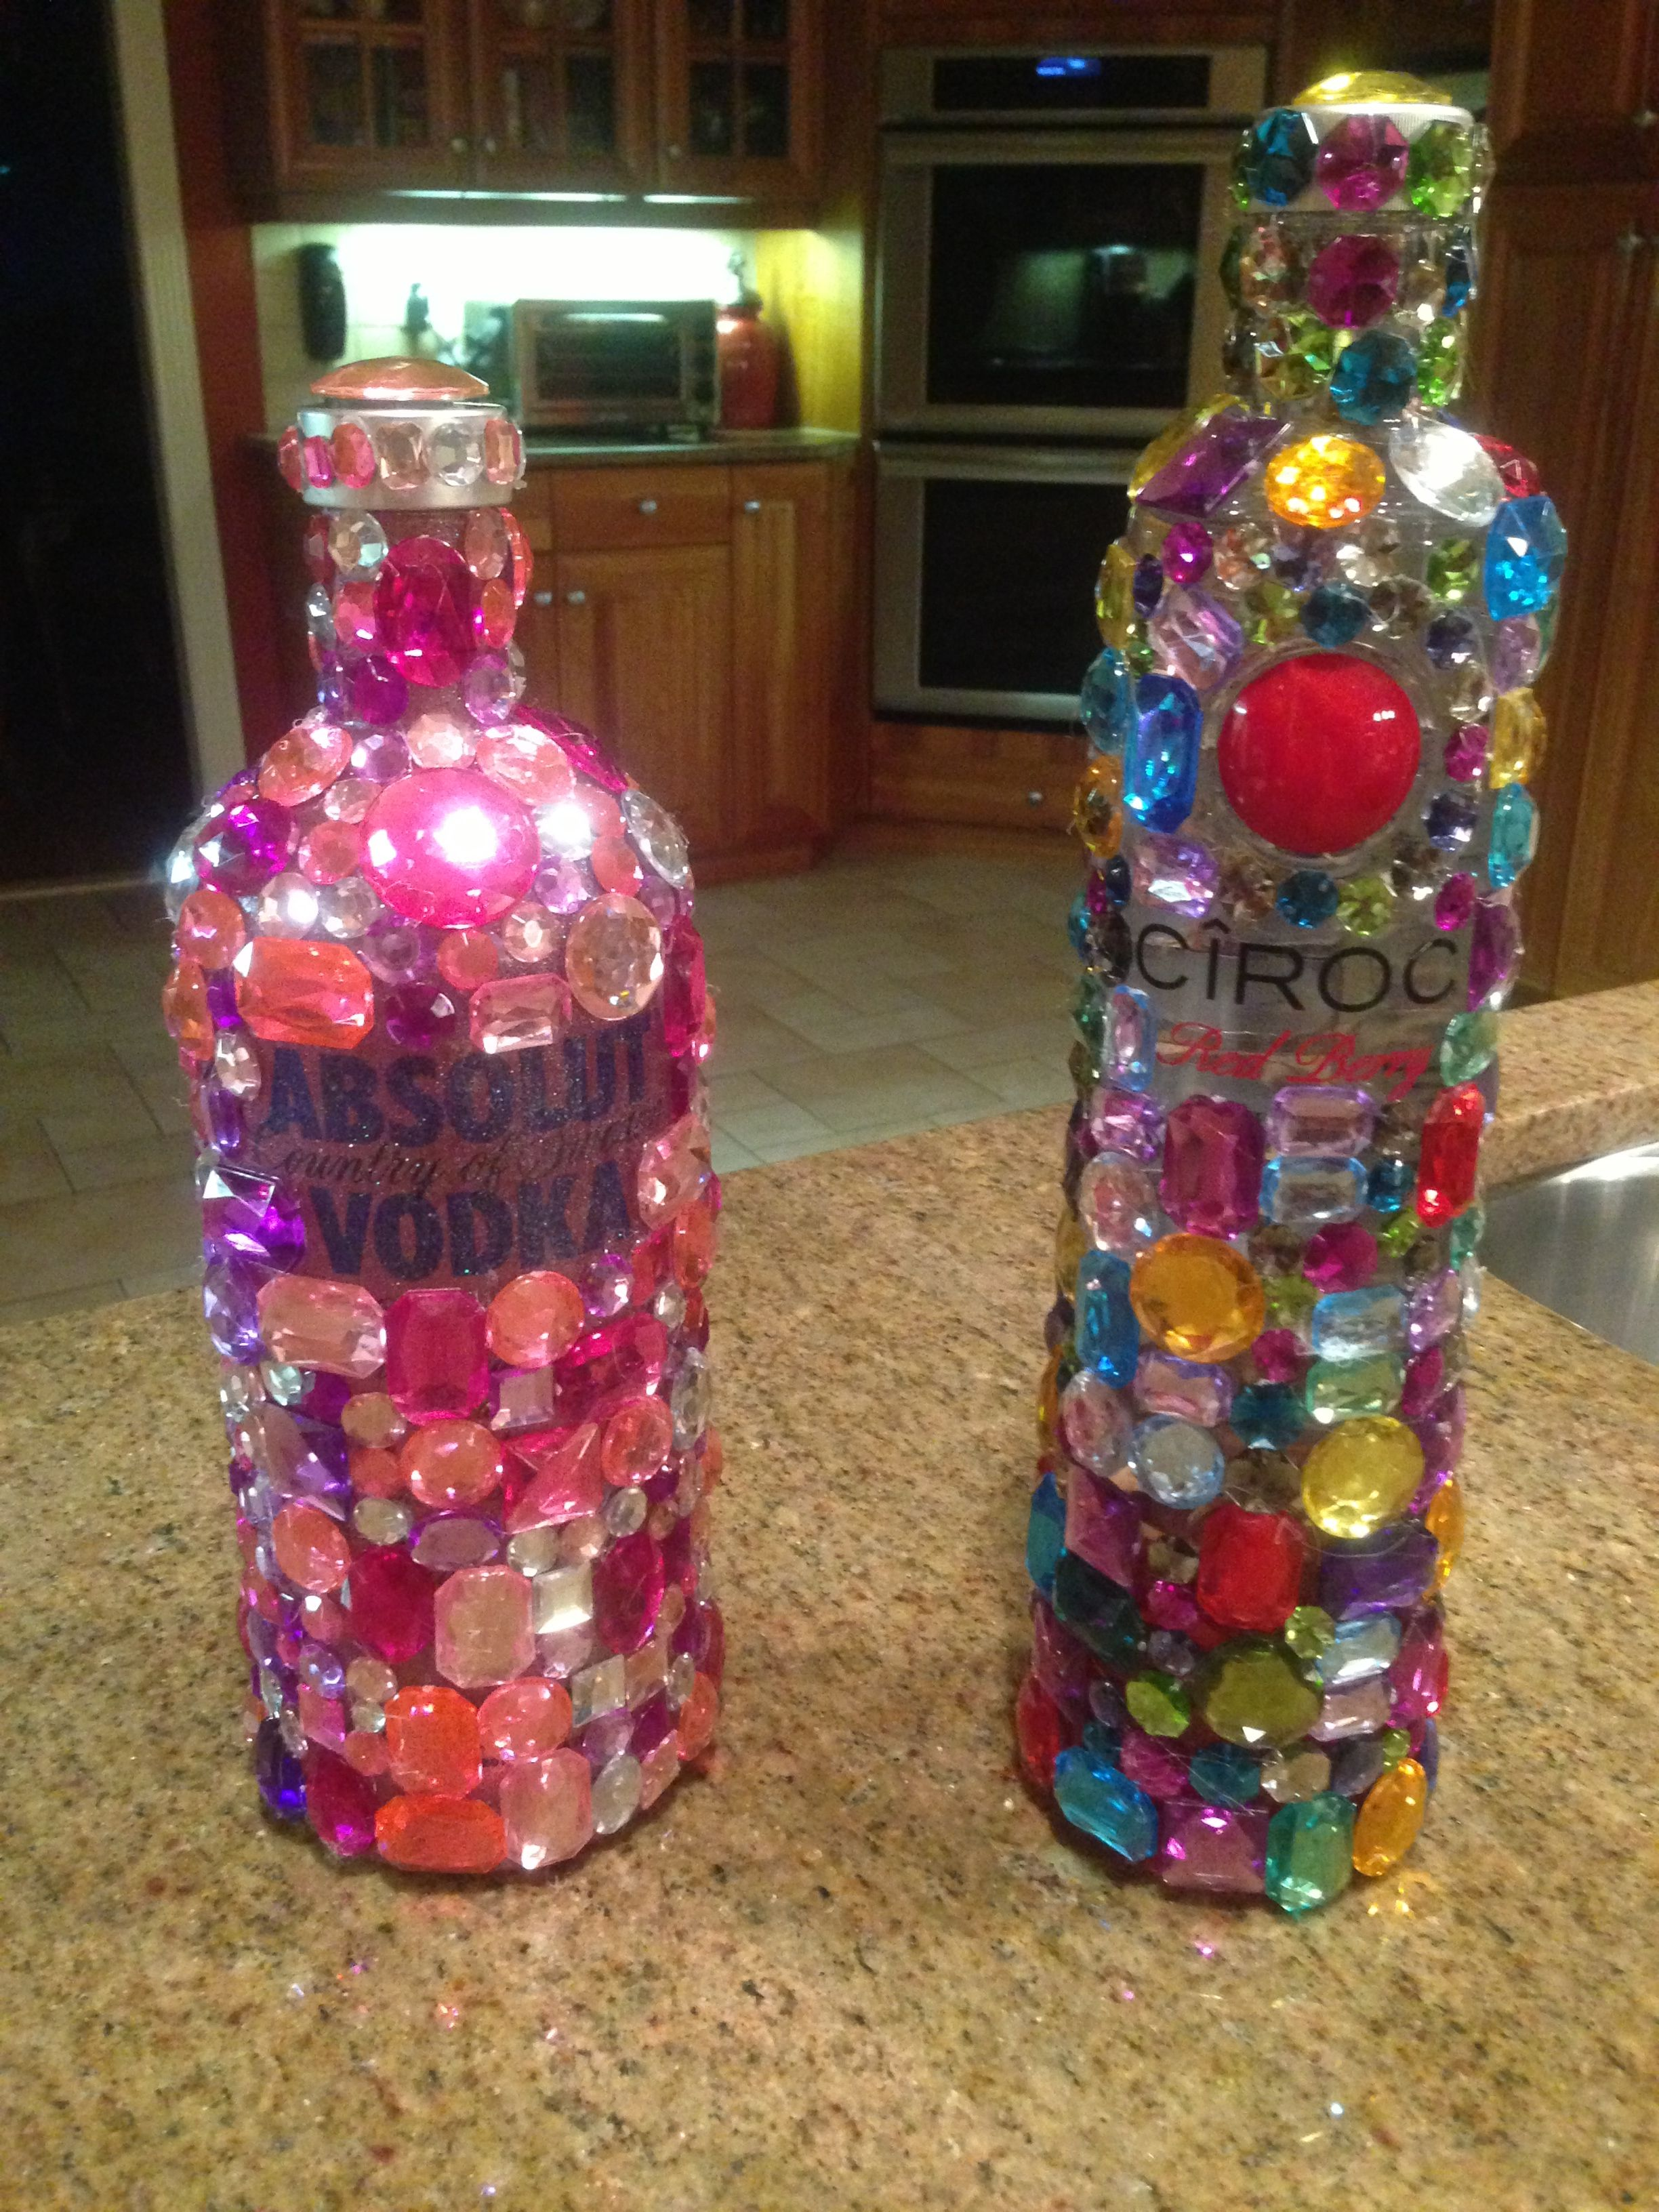 Cutest present idea for a girl turning 21! #ciroc #absolut ...